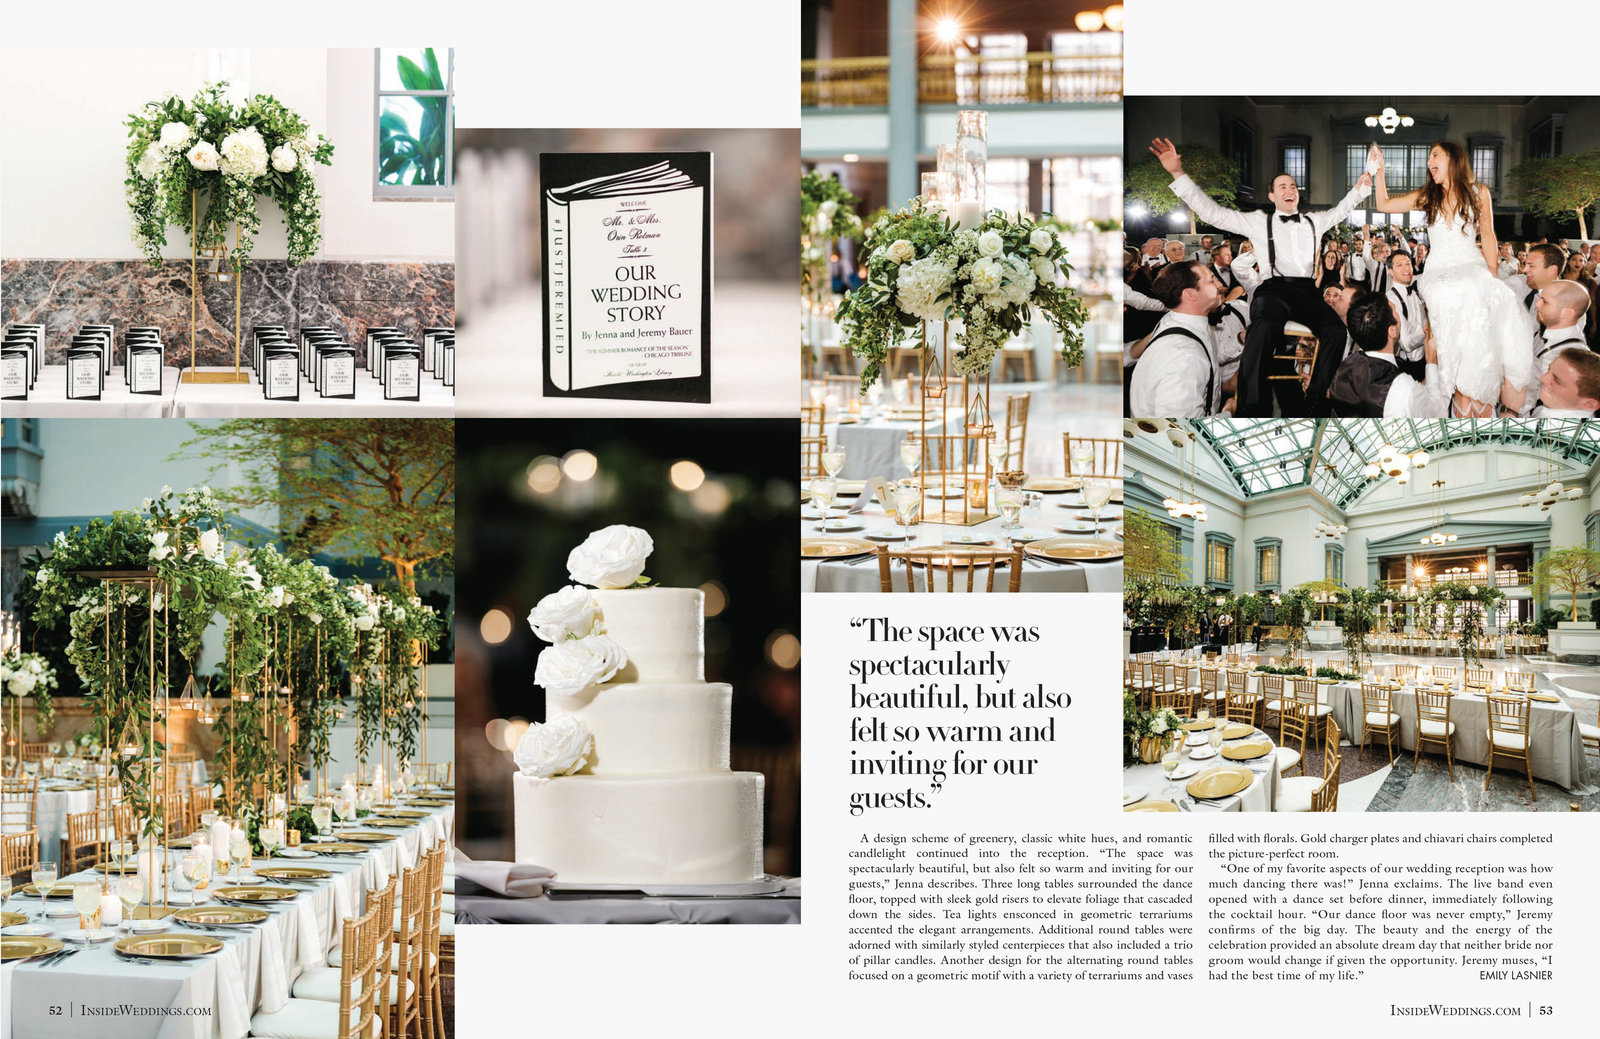 Inside Weddings_Summer 2019 - Pages 52-53